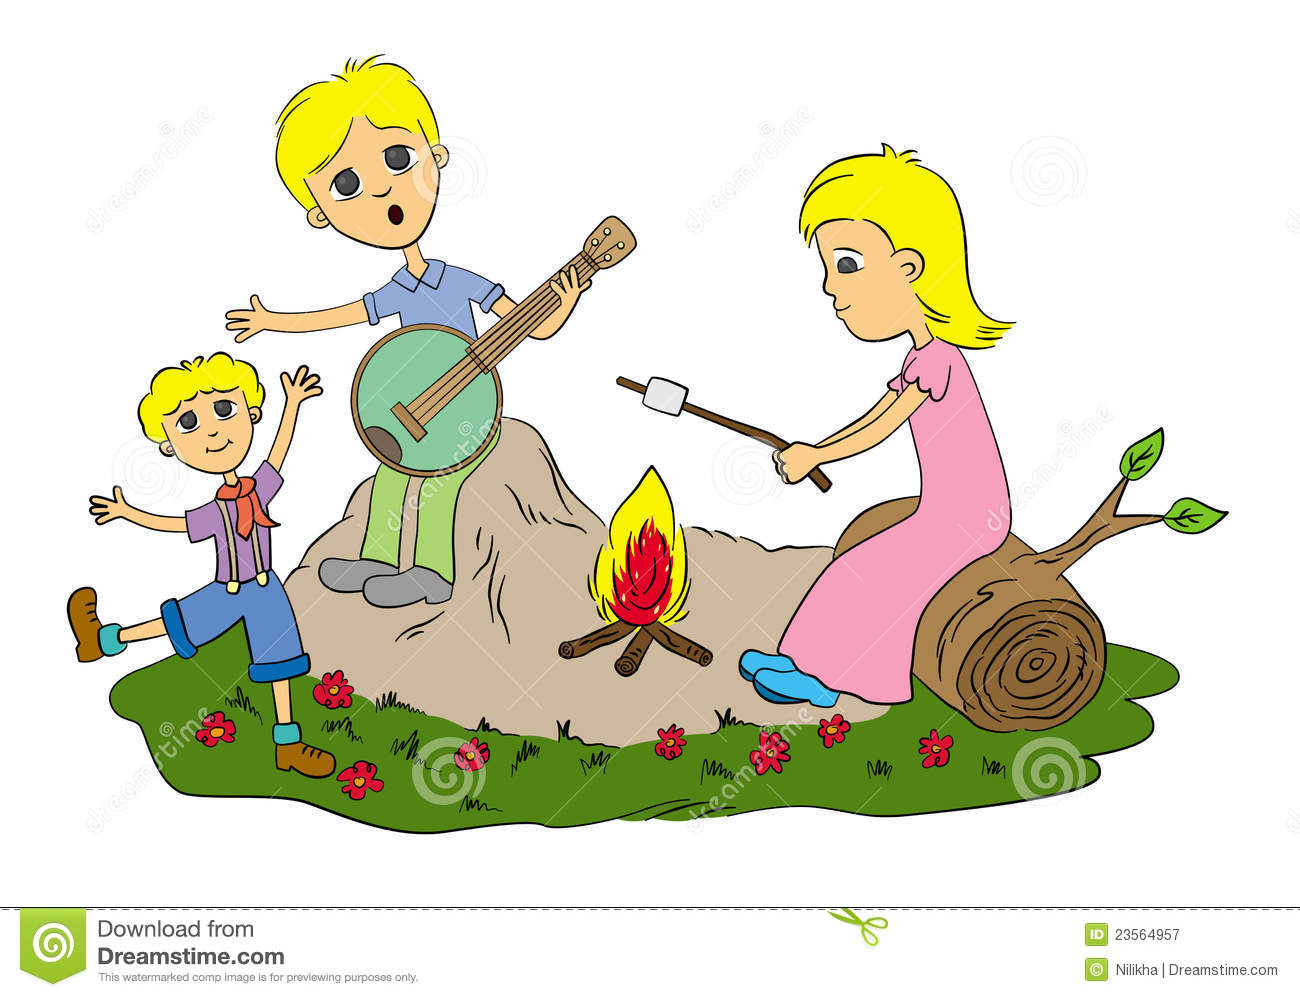 Campire pencil and in. Campfire clipart dance